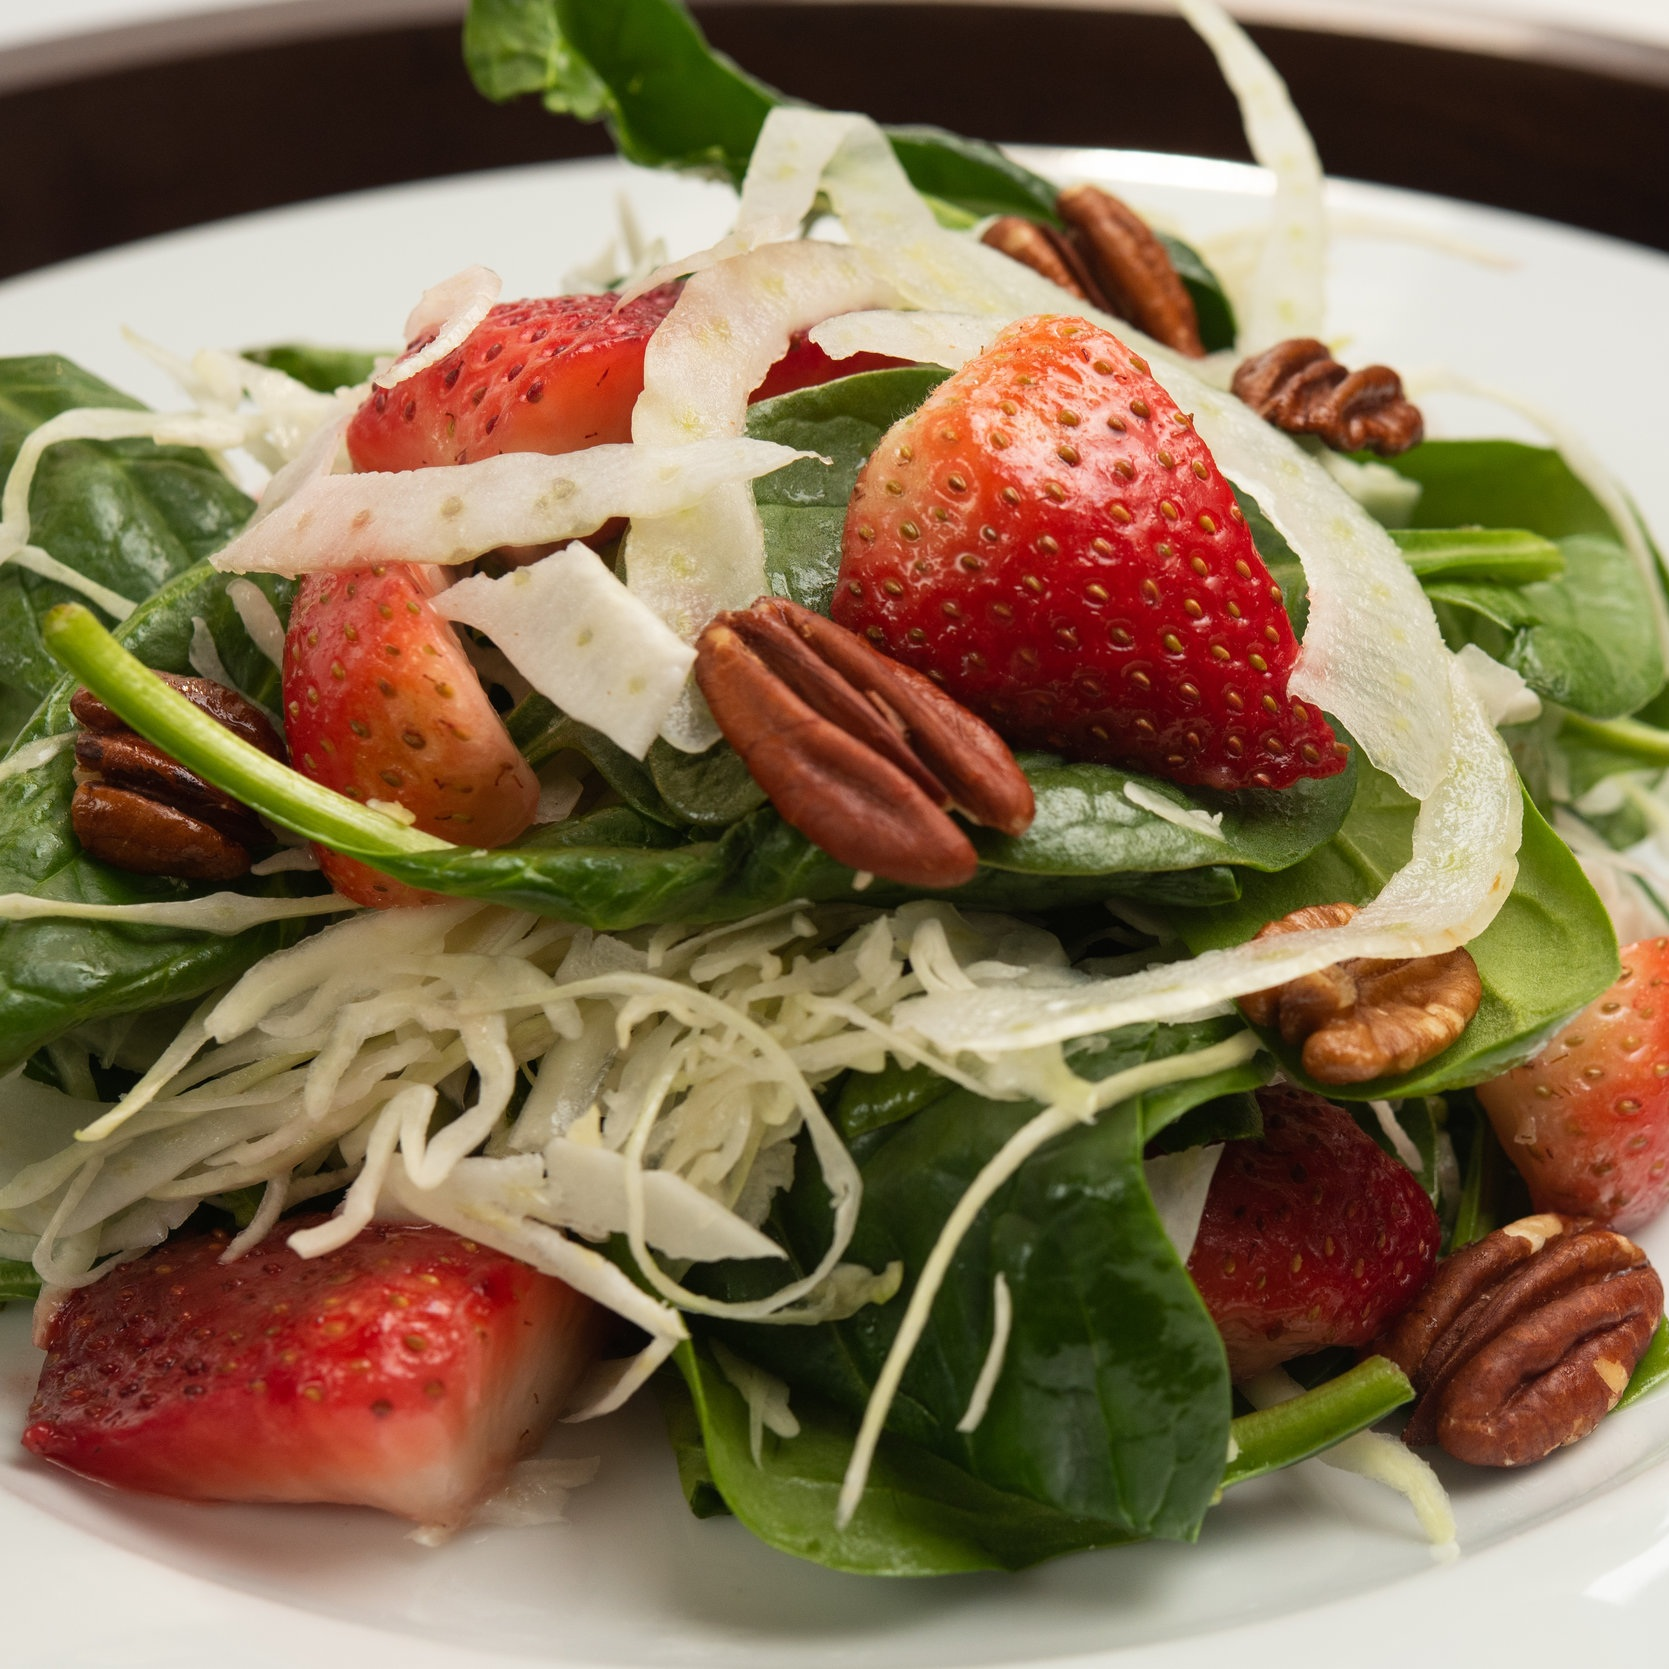 MAE MAE CAFé - BABY SPINACH SALADshaved fennel, strawberries, toasted pecans, lemon vinaigrette©chip klose